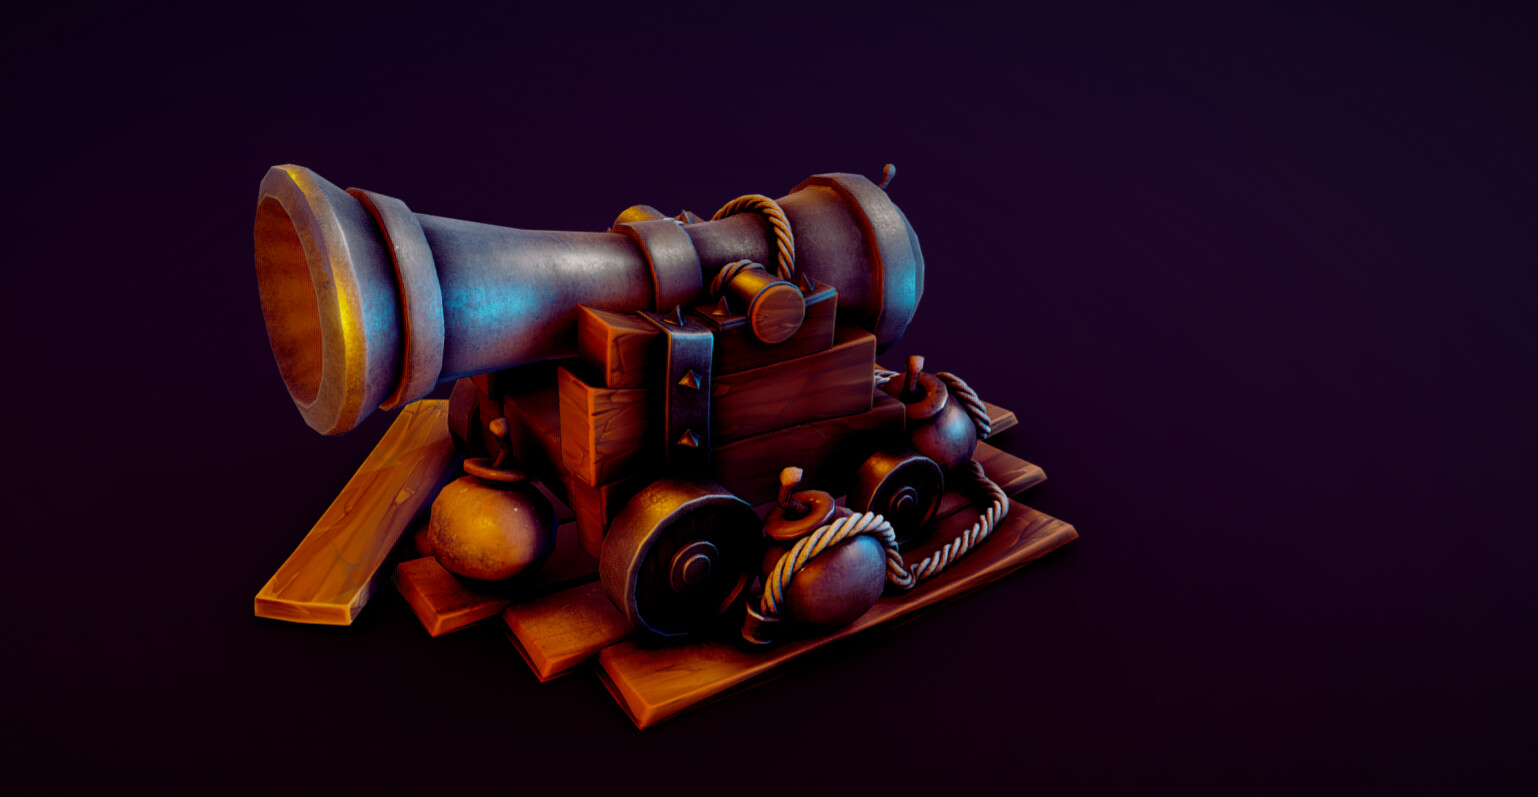 Medieval Cannon toon // the job is not done